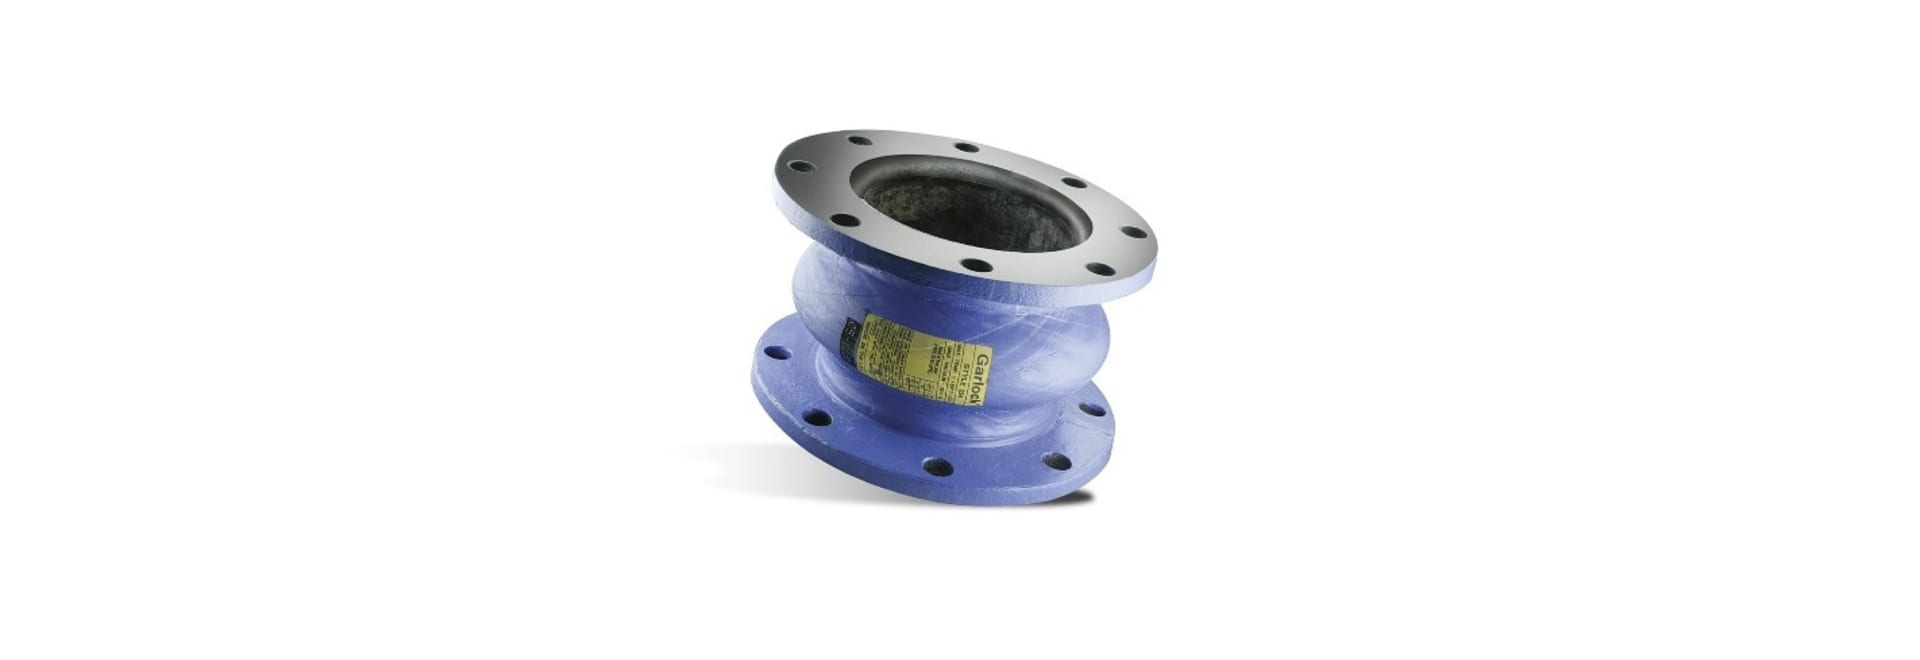 These uniquely constructed joints provide high levels of protection from stress, misalignment, vibration, noise, shock and corrosion.